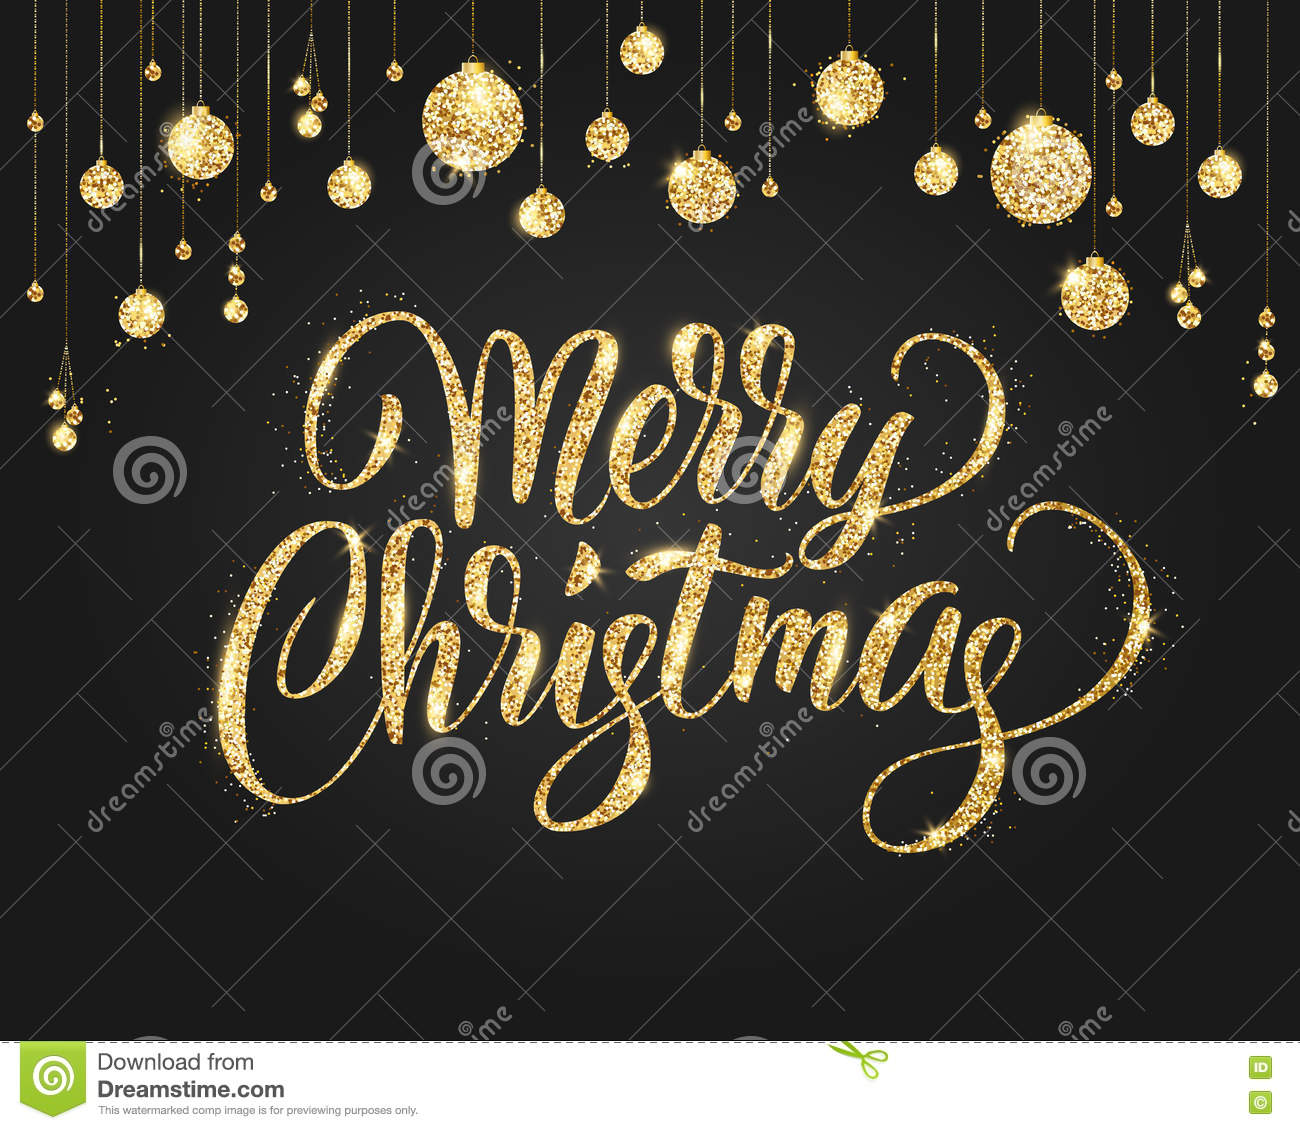 merry christmas card with lettering and glitter decoration black and gold background with hanging christmas balls great for greeting cards party posters